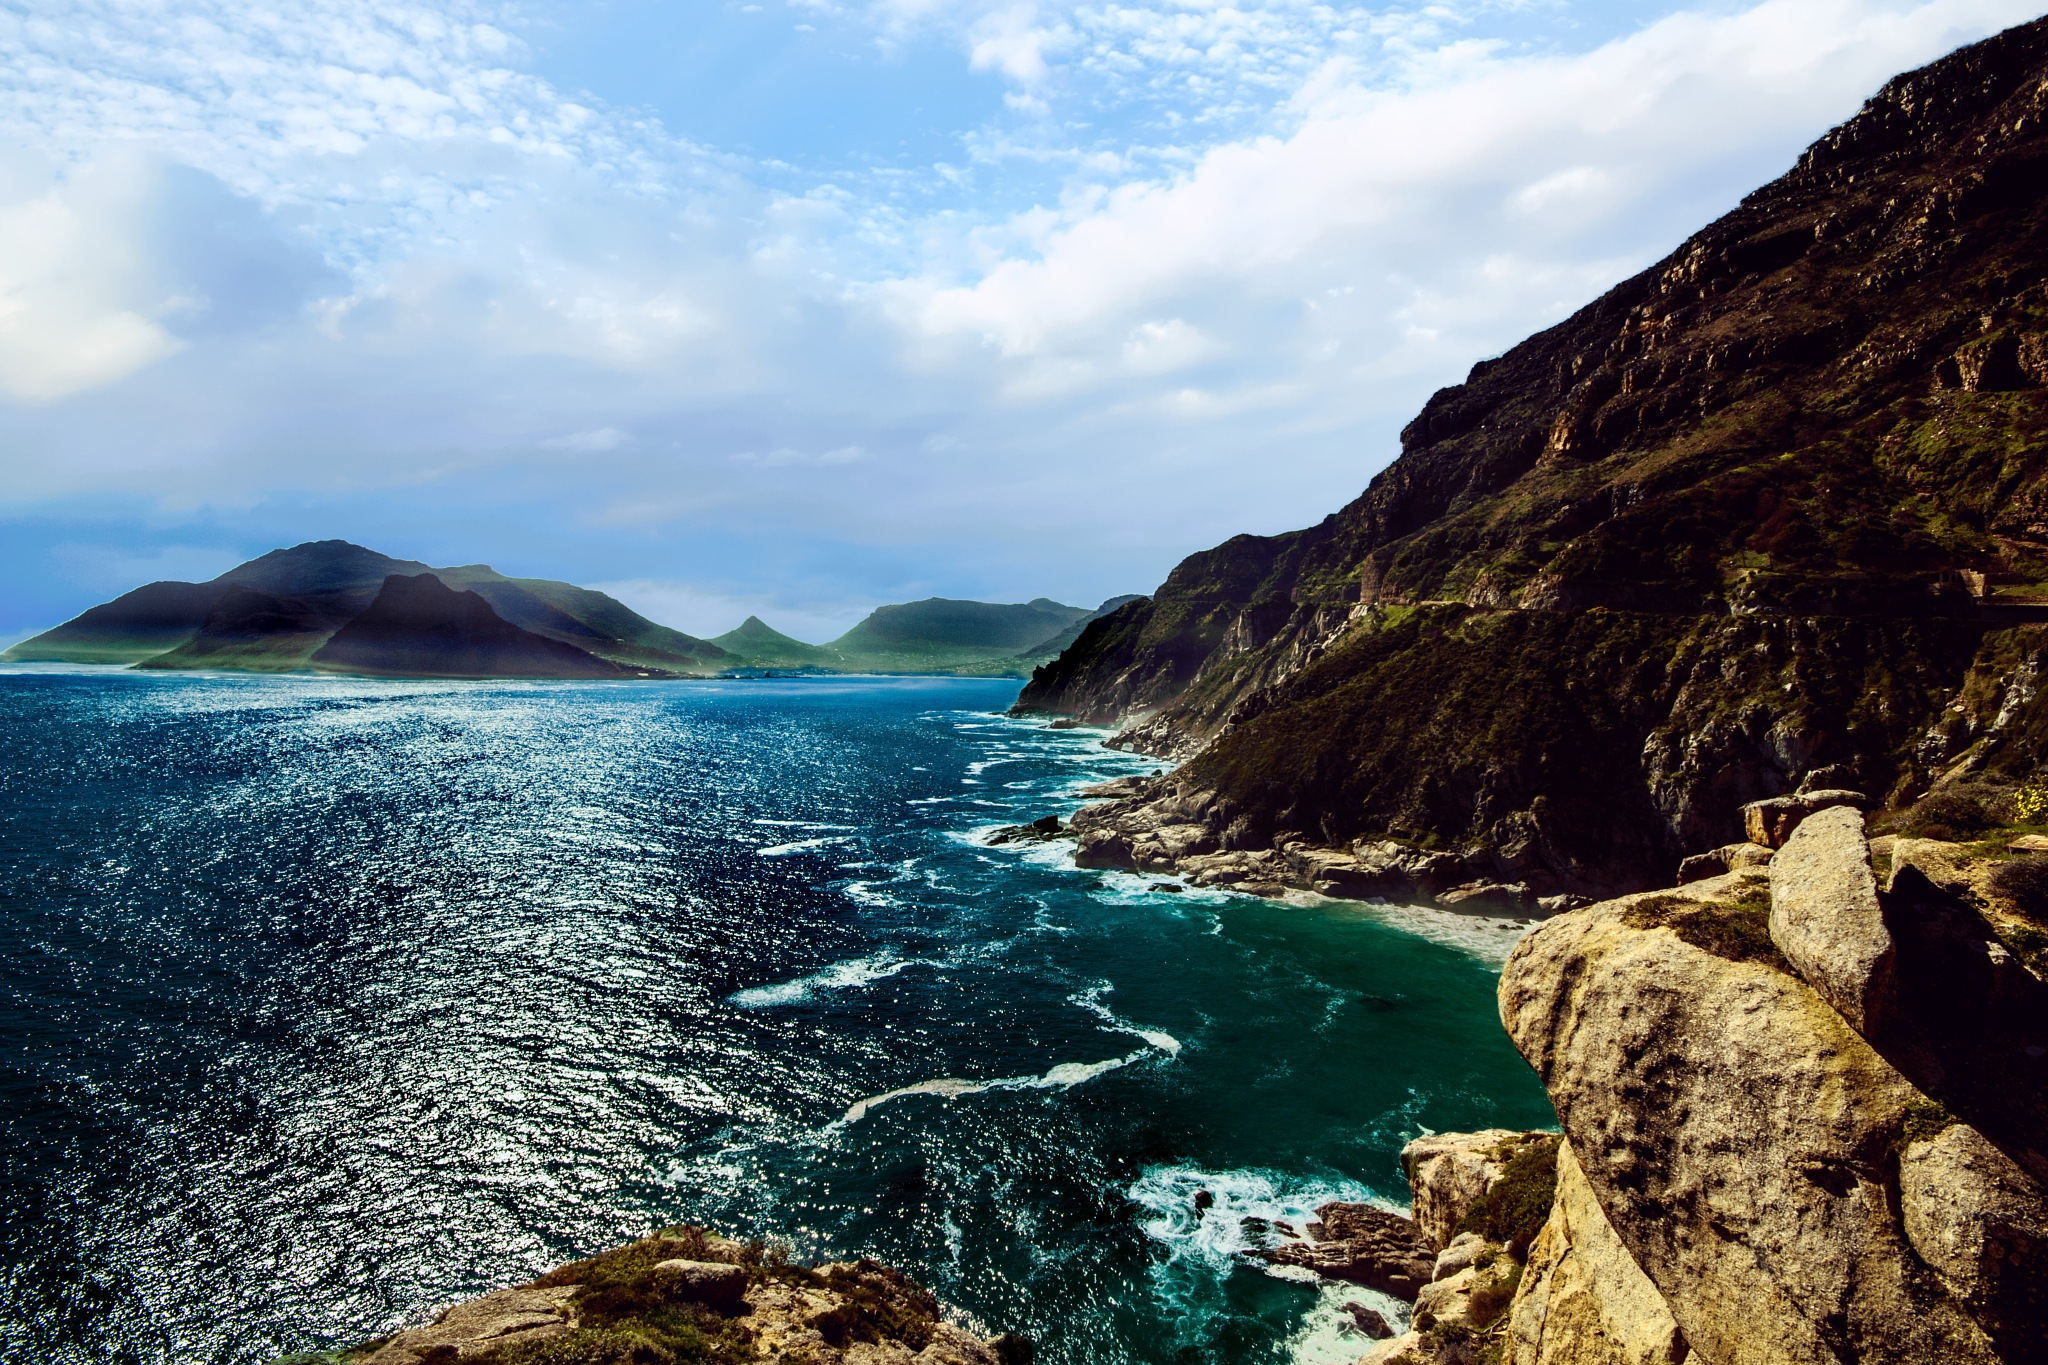 Hout Bay from Chapman's Peak by Nauta Piscatorque